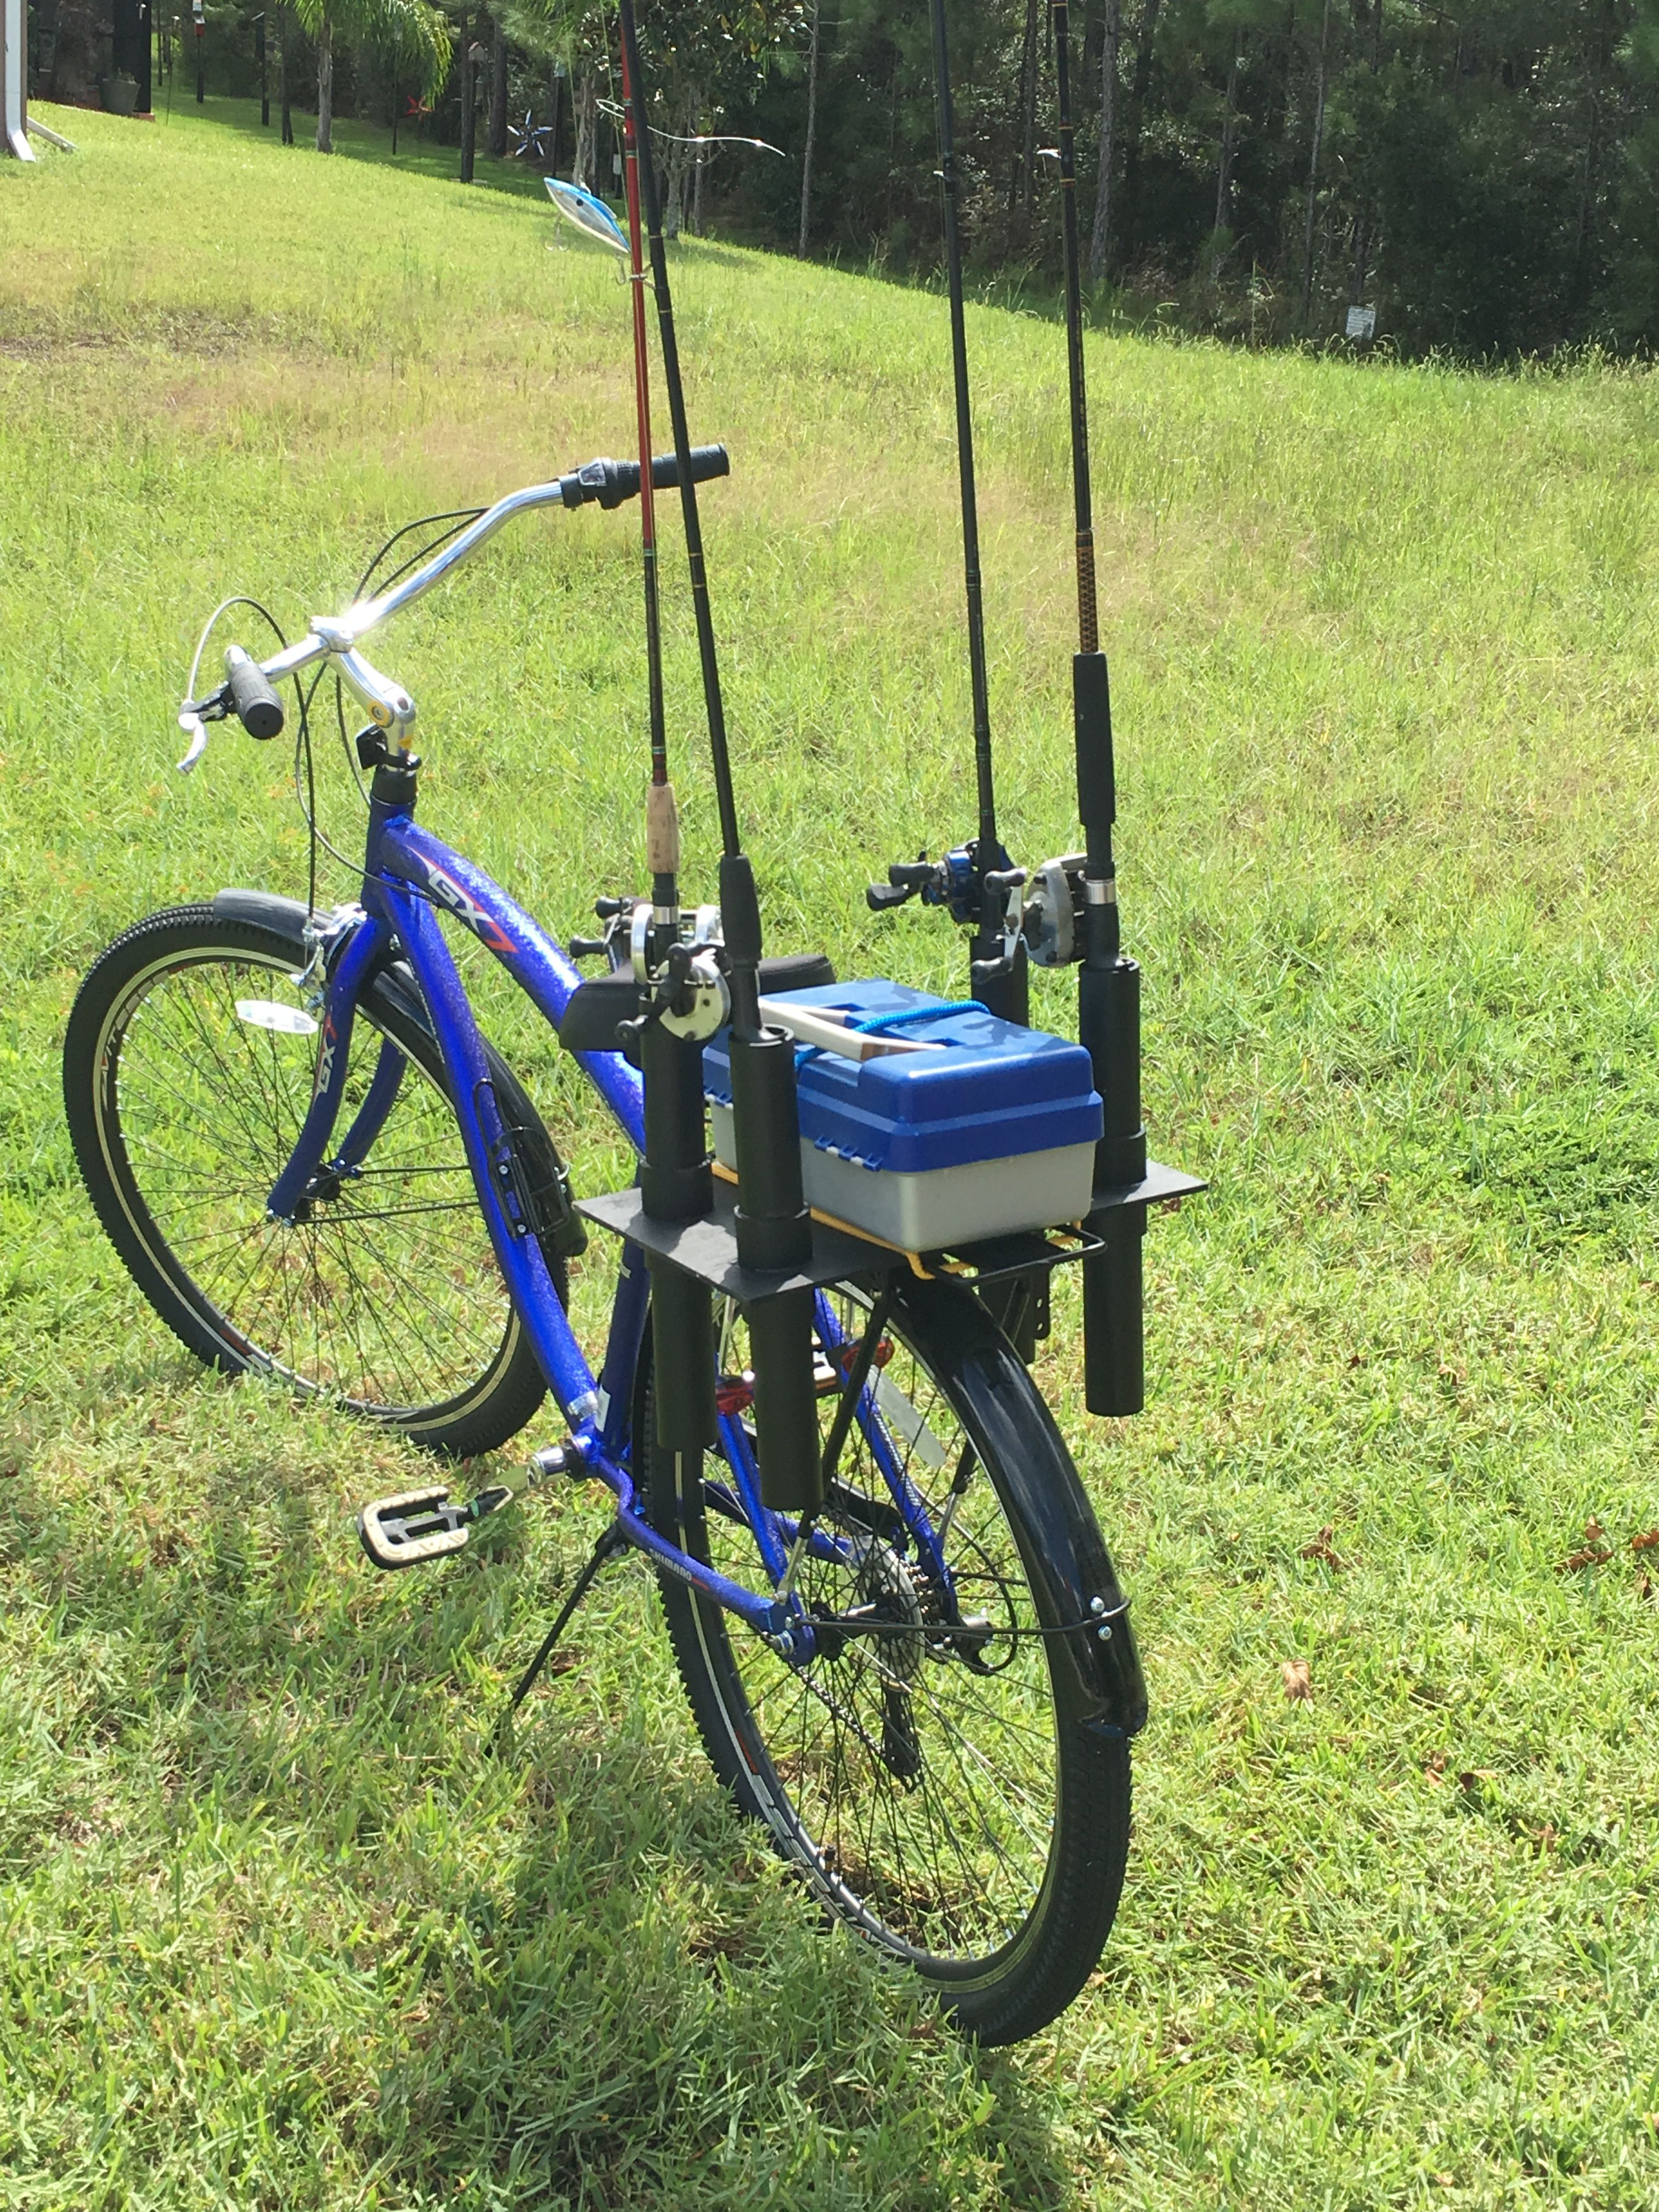 Tow Hitch Bike Rack >> DIY rack for rod and reels and tackle box I made for my ...